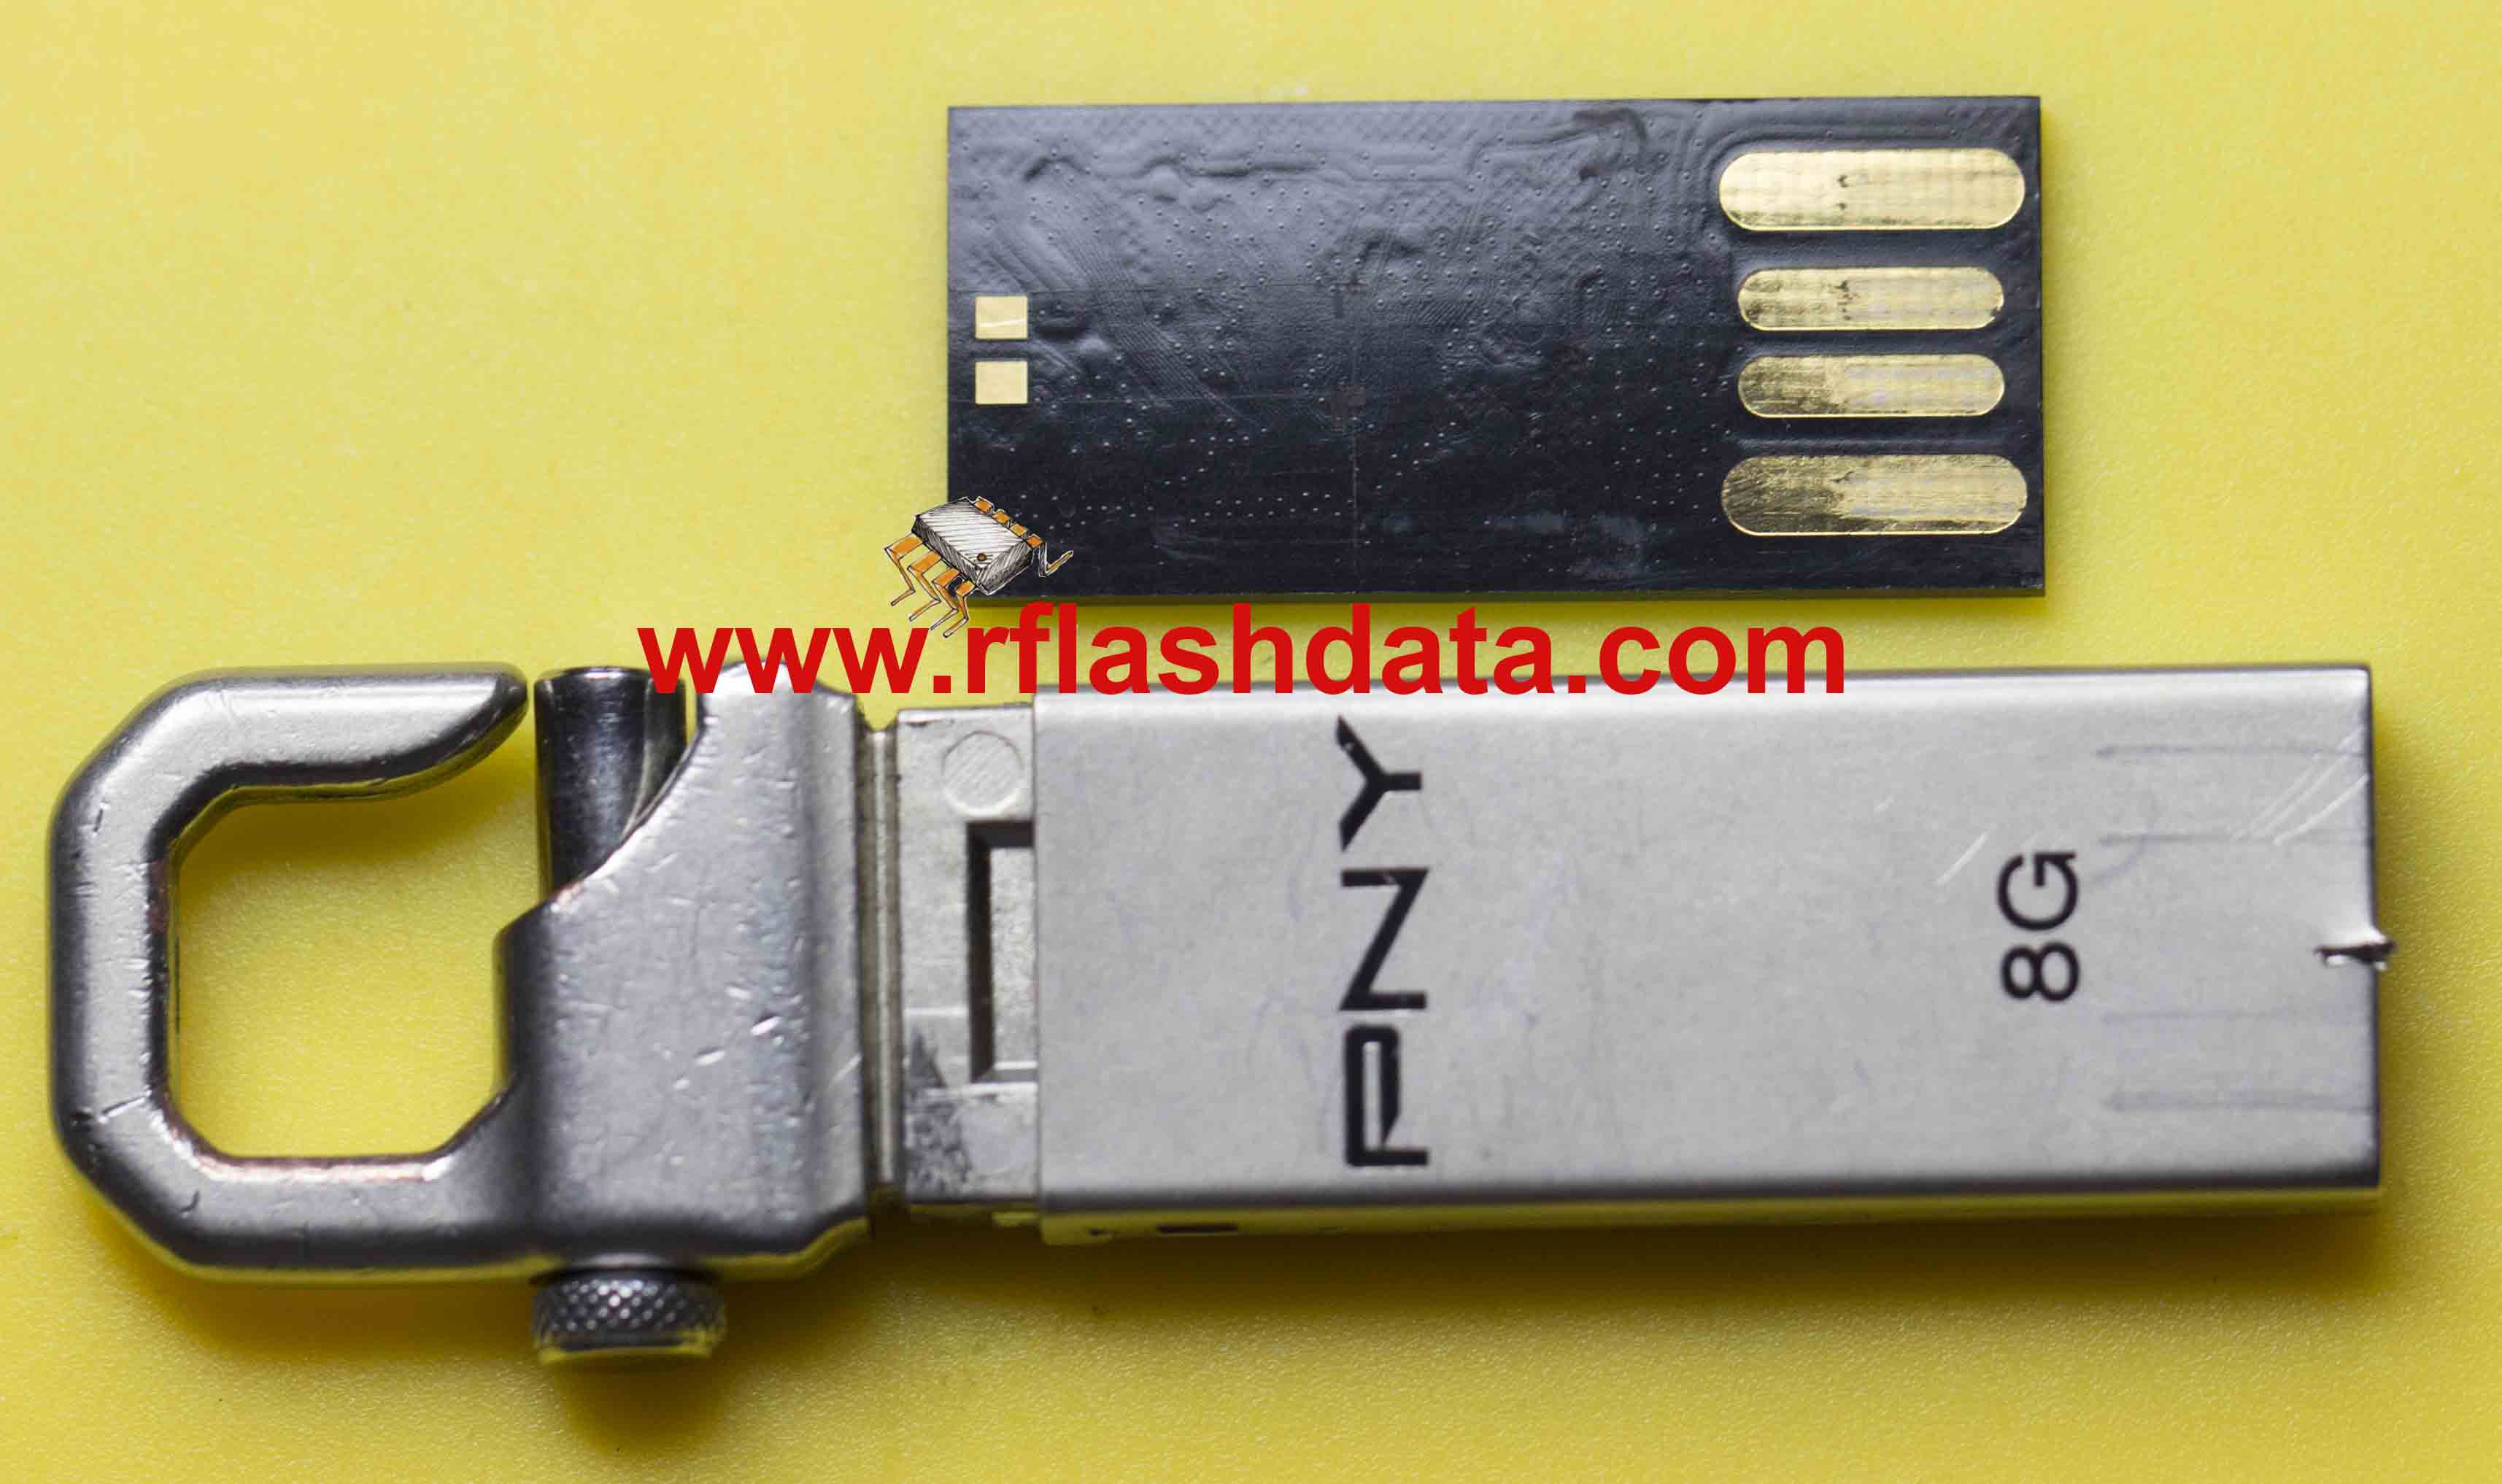 PNY FLASH DRIVE DATA RECOVERY